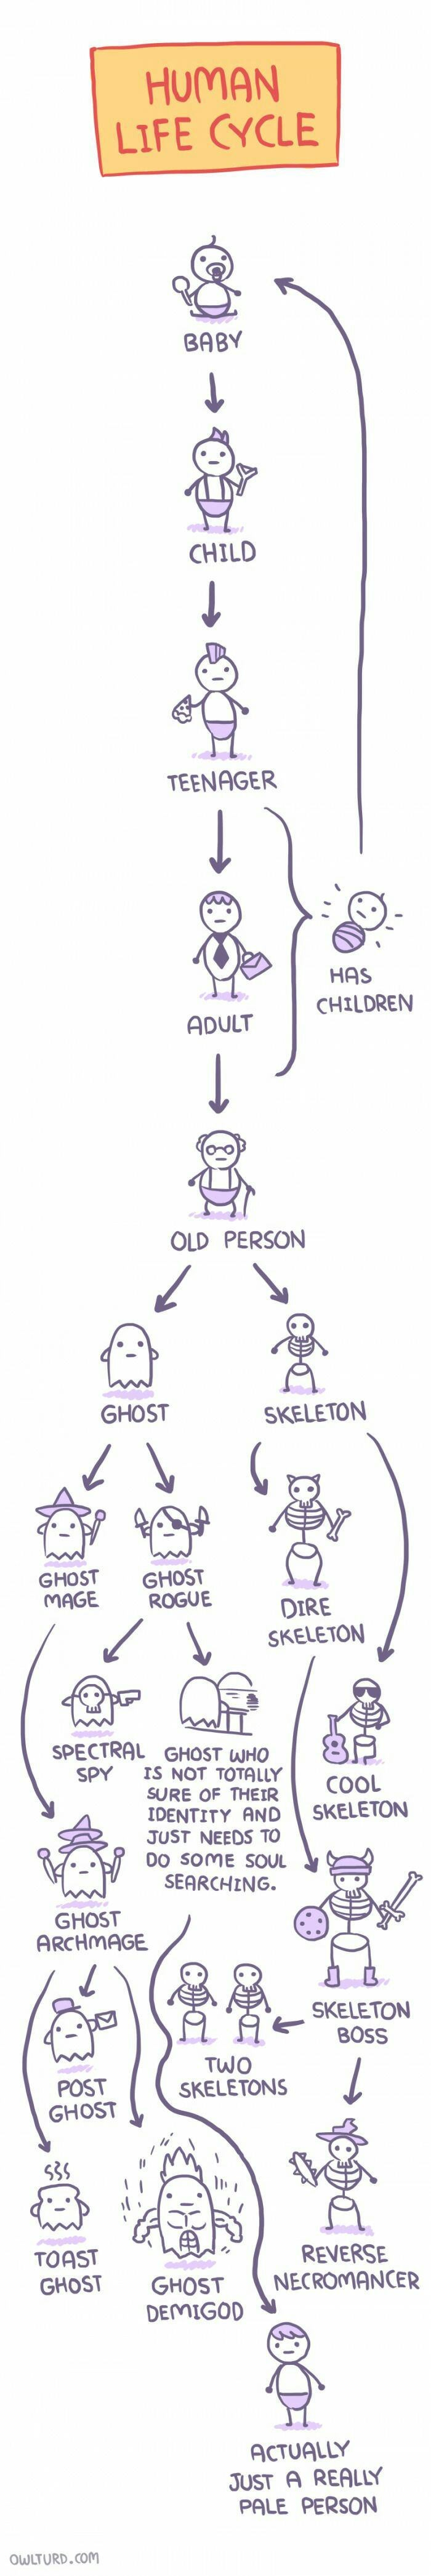 funny-web-comics-the-most-accurate-representation-of-the-human-life-cycle